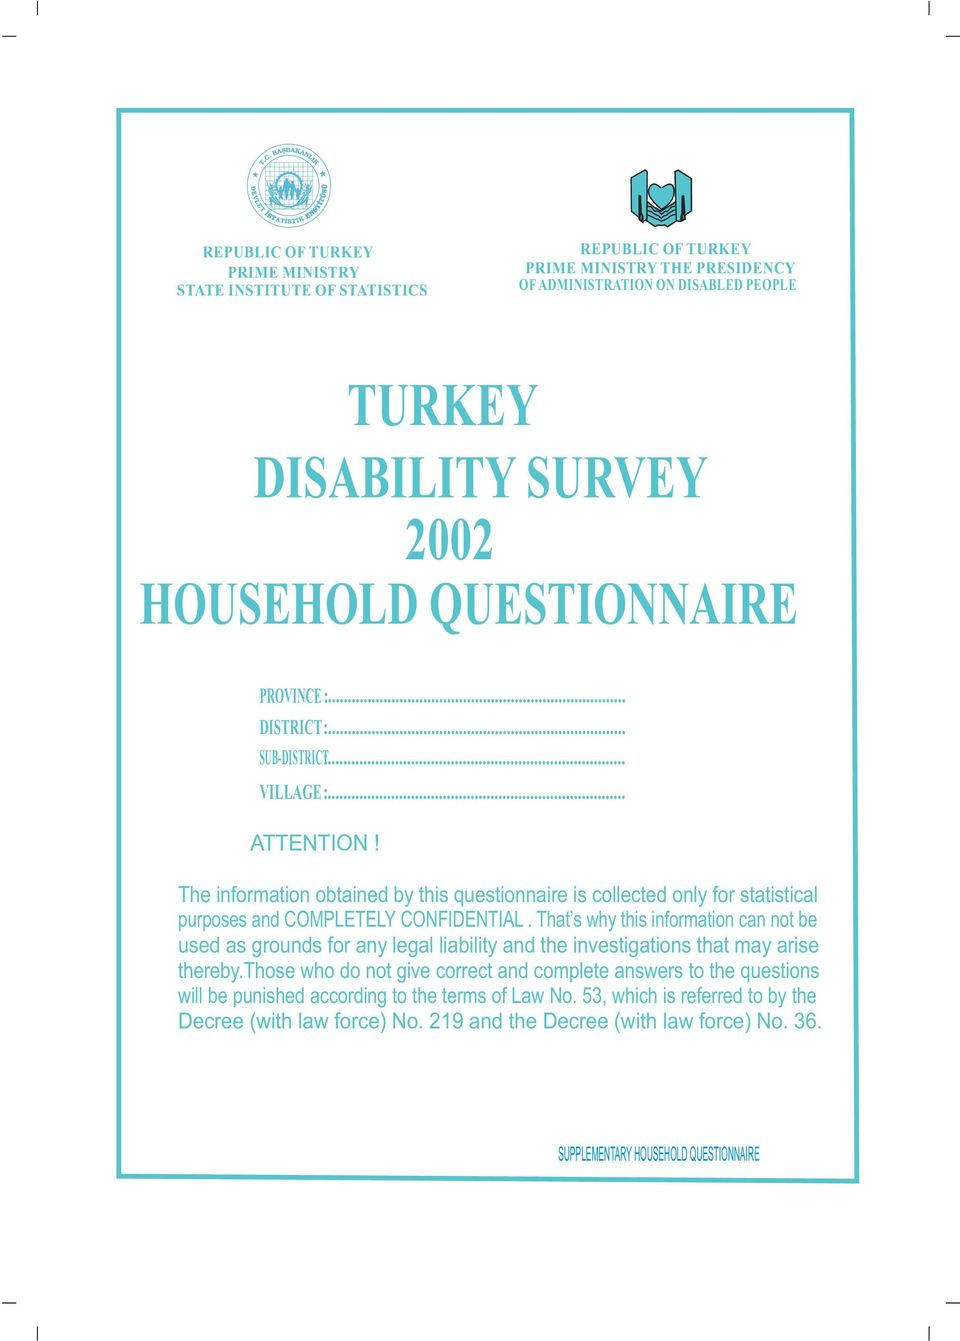 The information obtained by this questionnaire is collected only for statistical purposes and COMPLETELY CONFIDENTIAL.